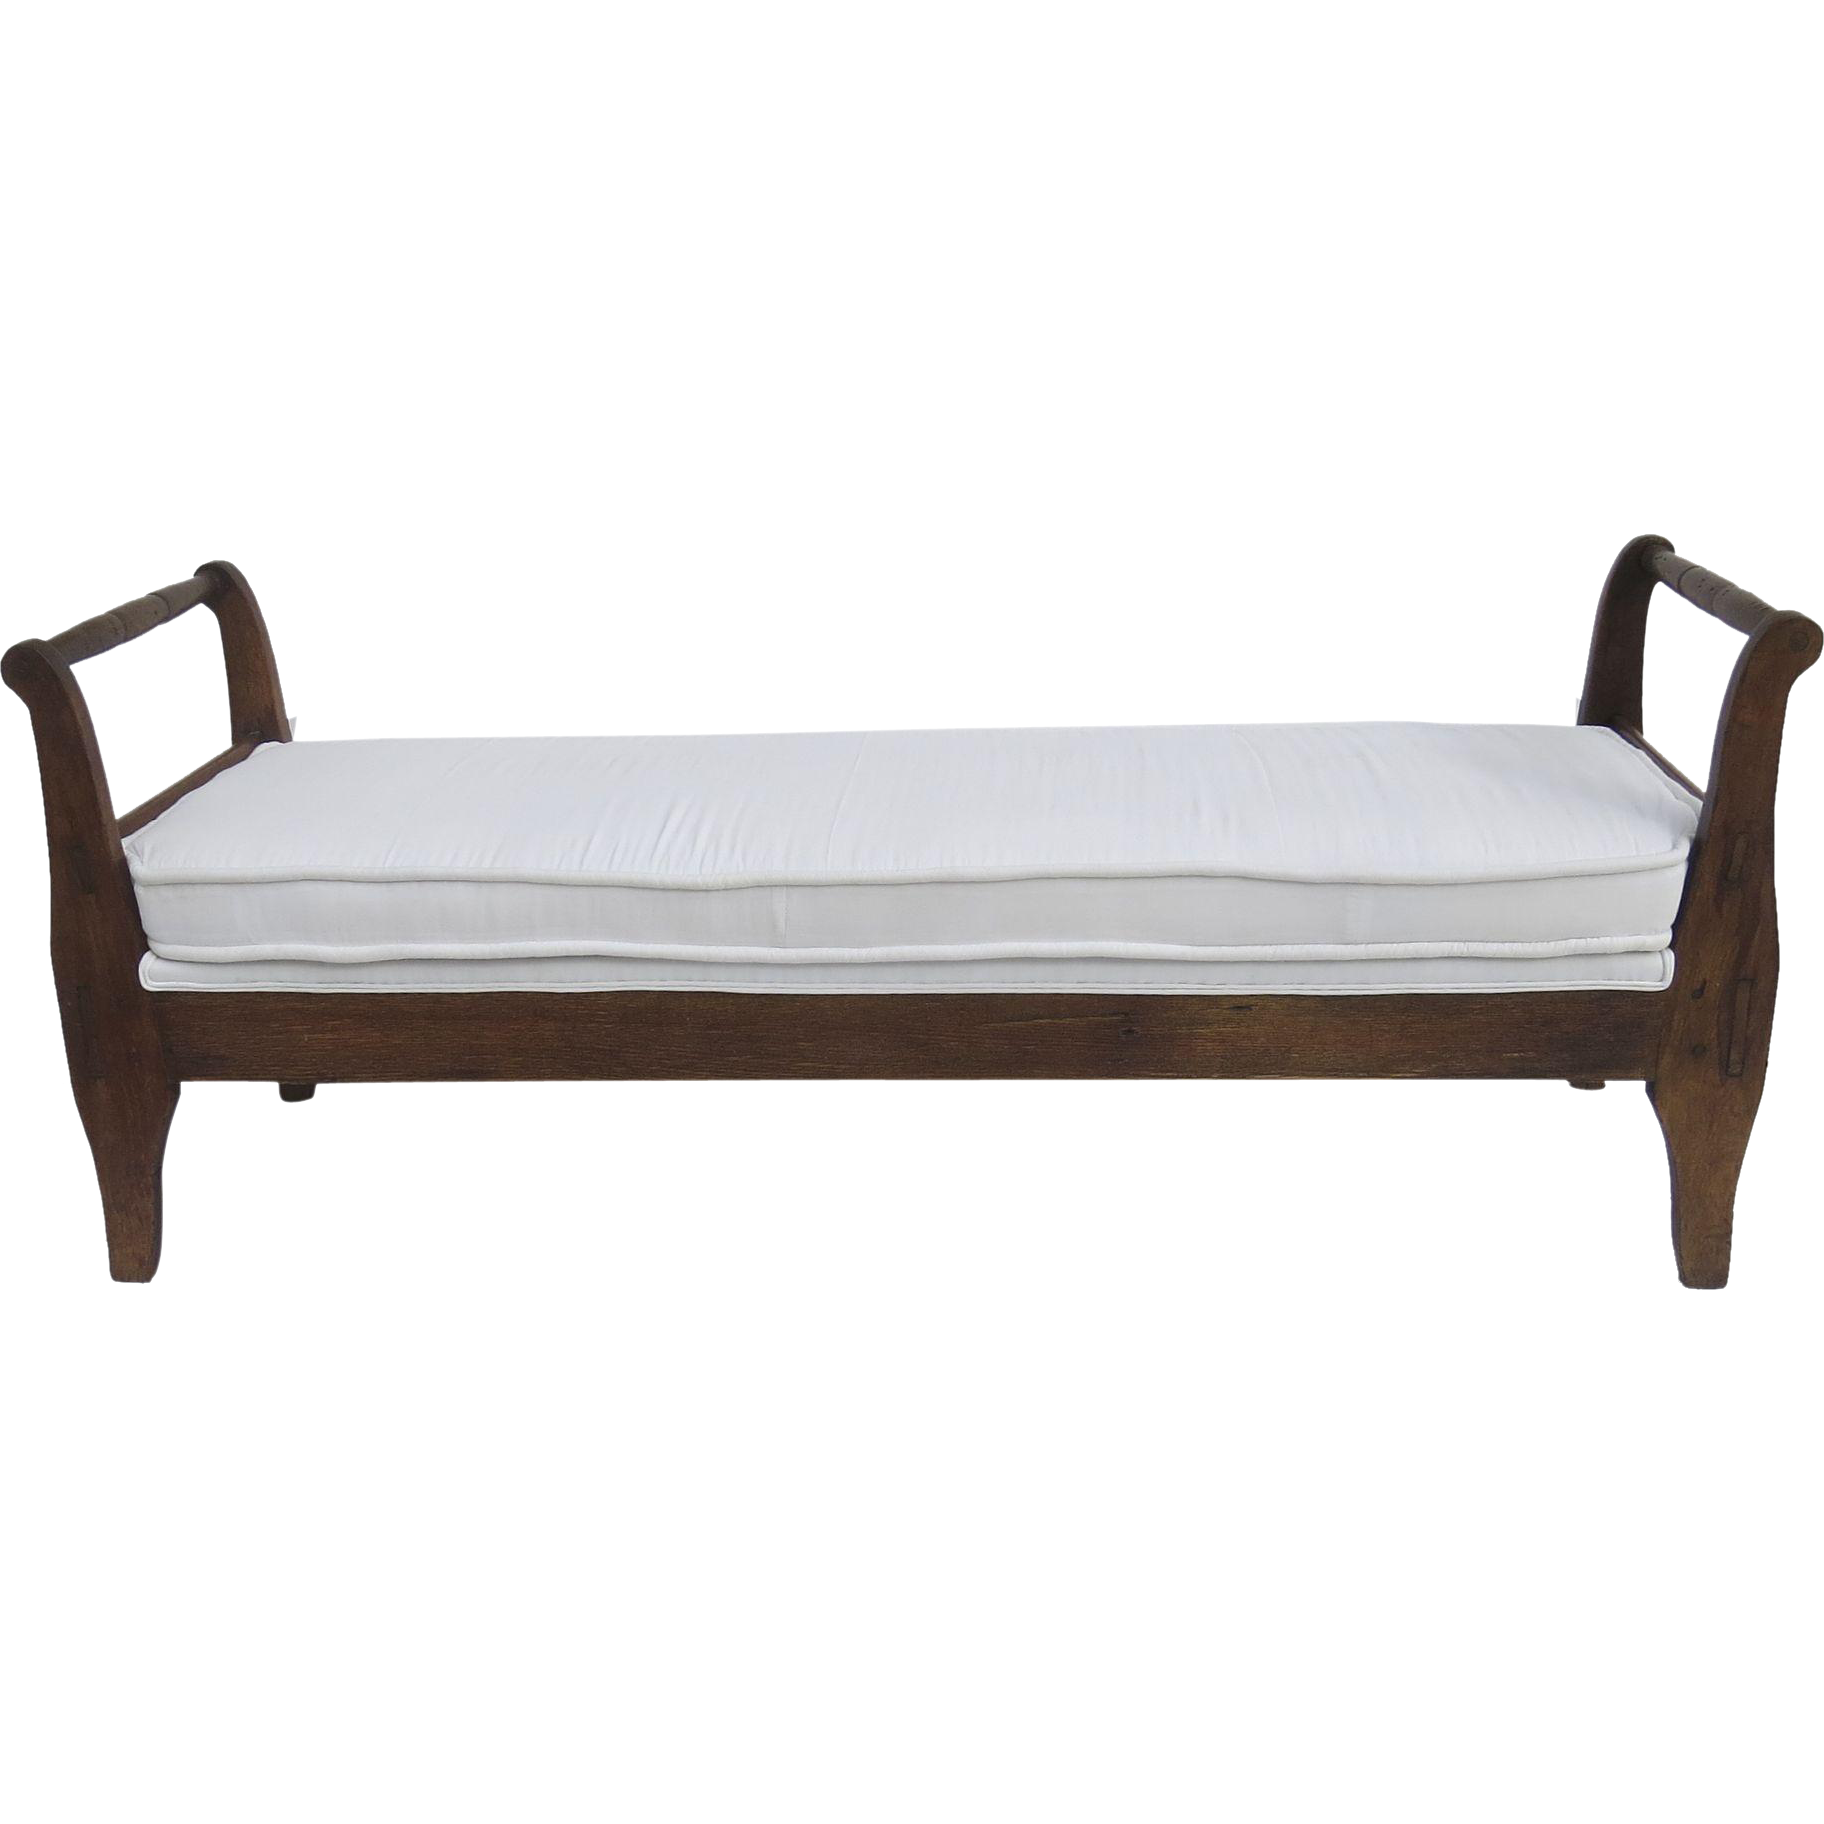 Early American Daybed or Bench with Trace of Old Red Paint from